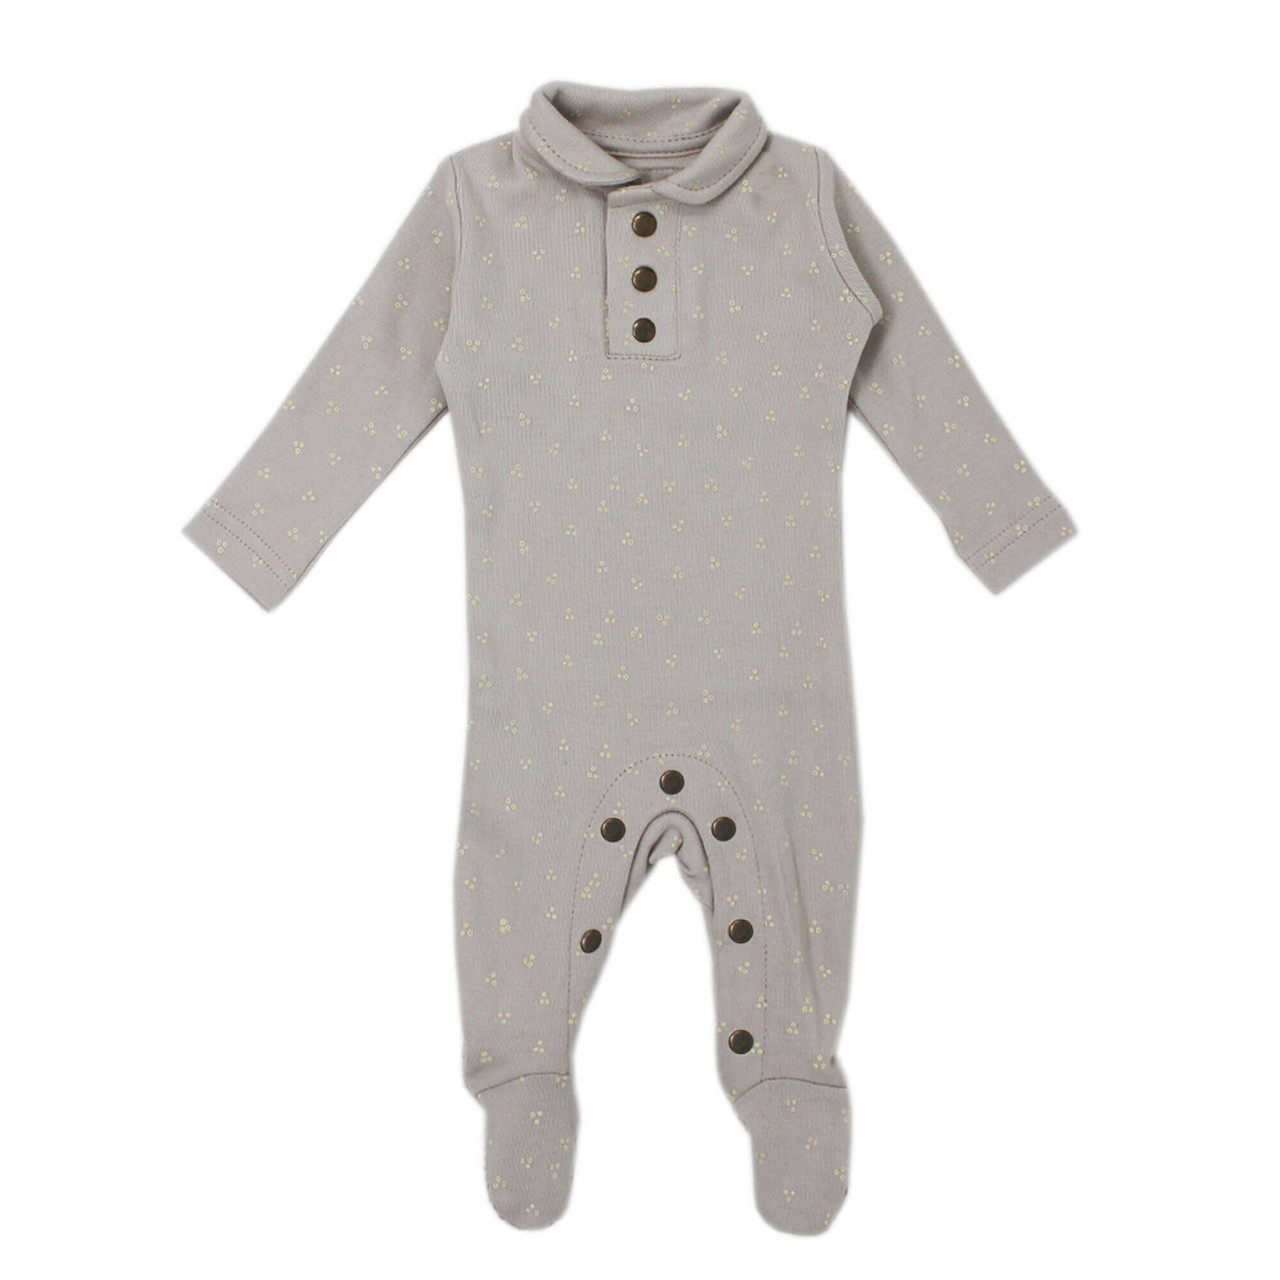 Organic Polo Overall in Pebble Dots, Flat